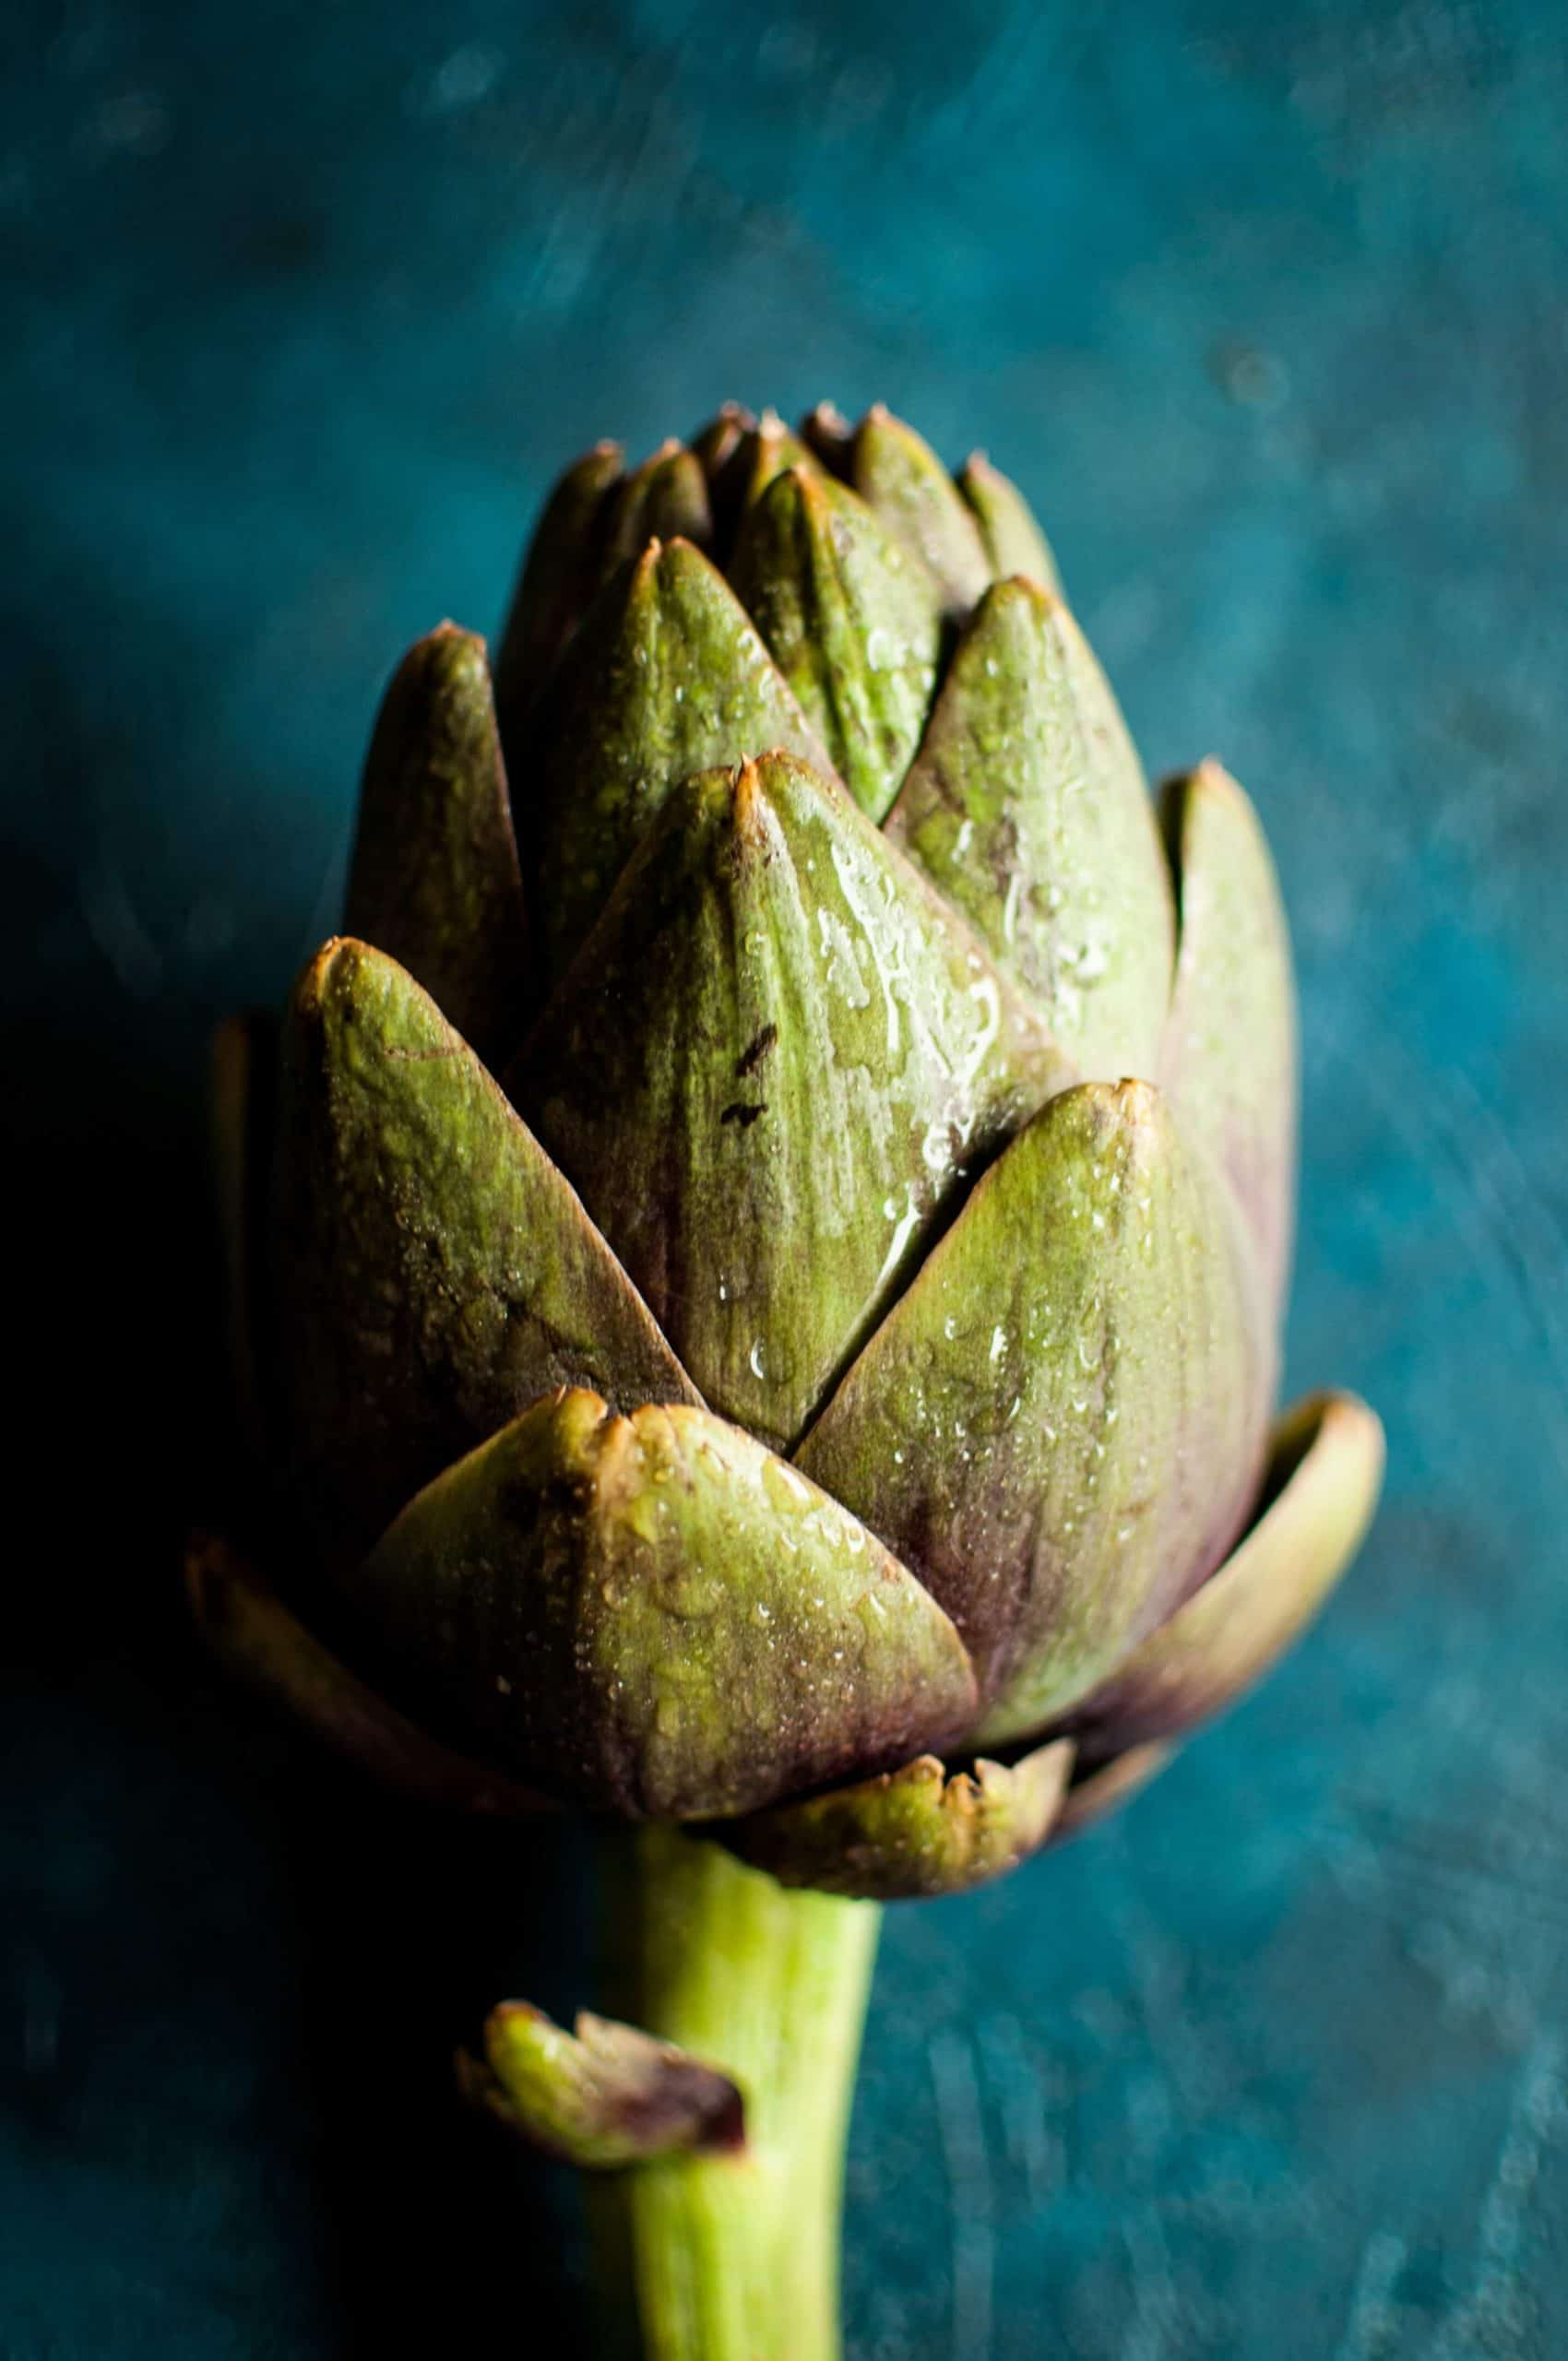 Artichoke on blue background